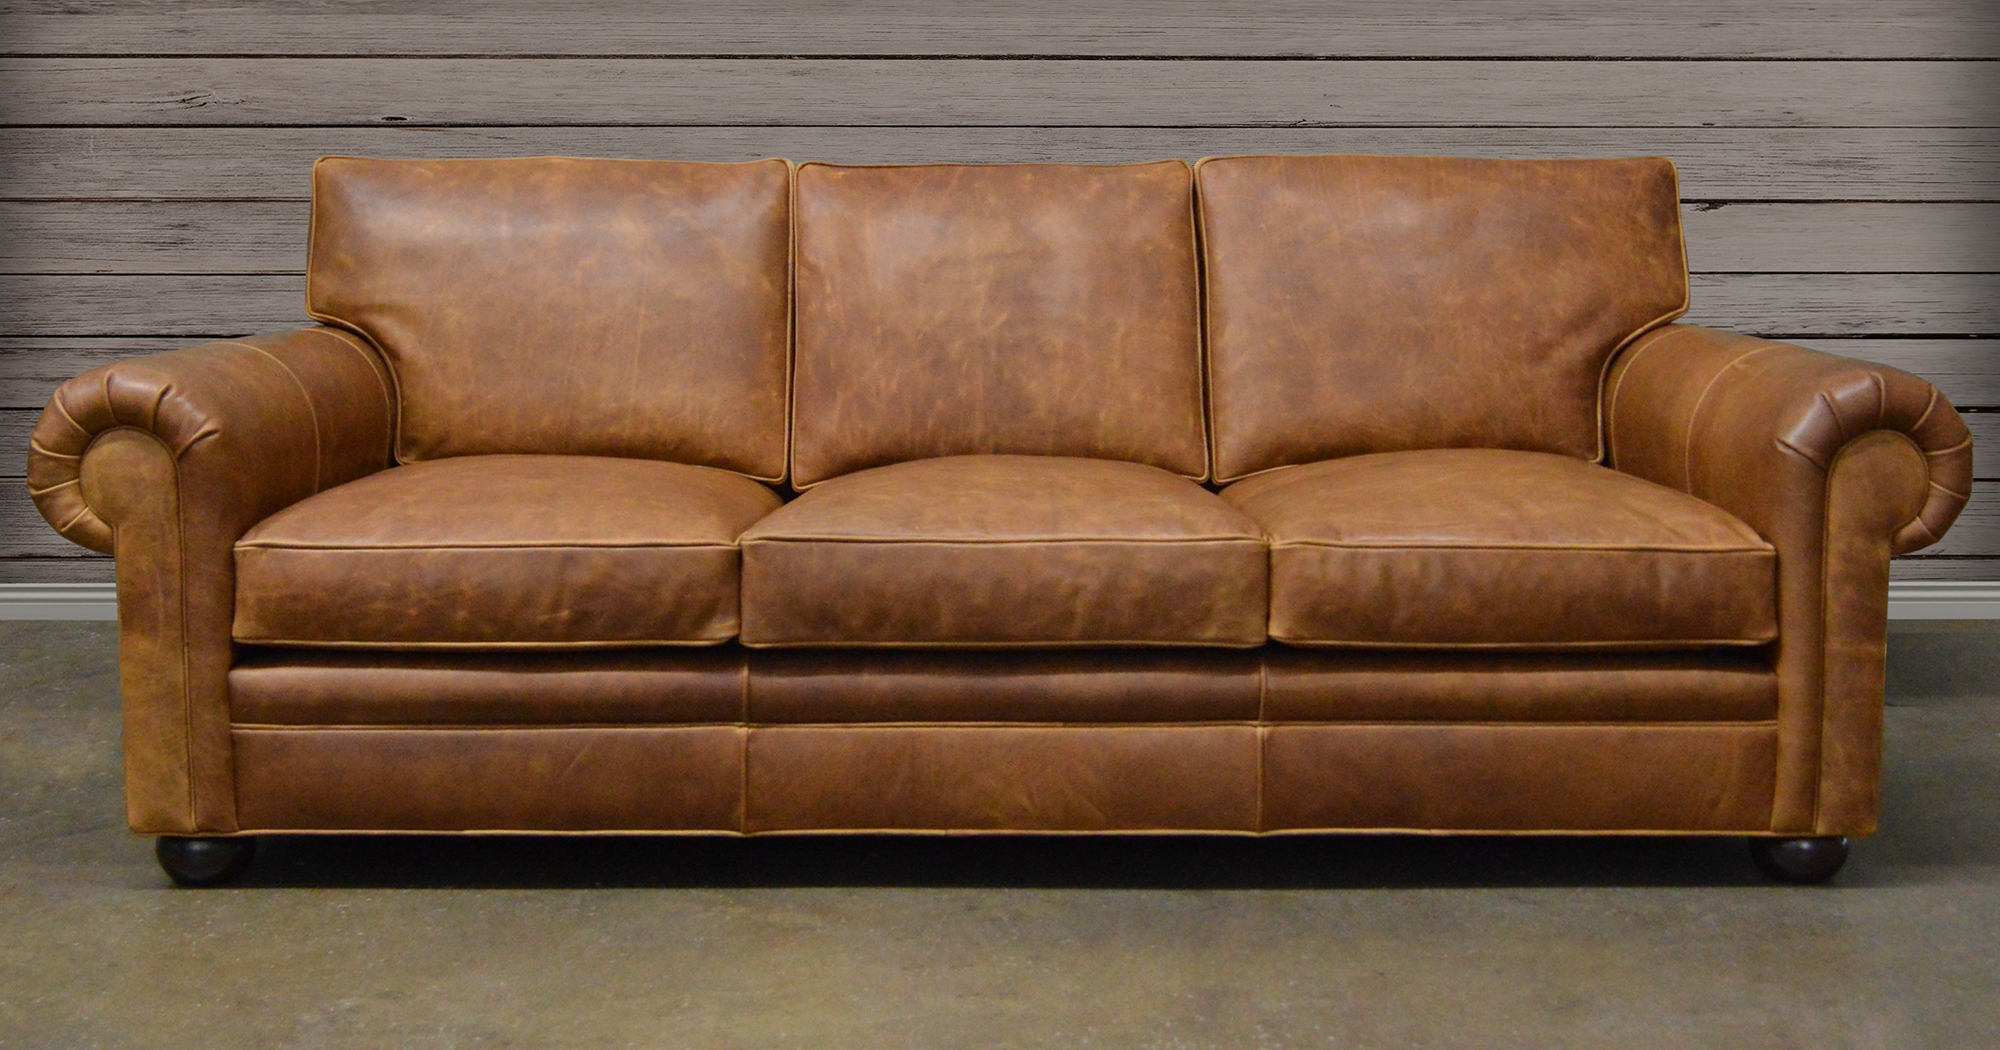 [%Sofa: Concepts Light Brown Leather Sofa 100% Leather Sofas, Ashley Pertaining To Most Current Light Tan Leather Sofas|Light Tan Leather Sofas Pertaining To Recent Sofa: Concepts Light Brown Leather Sofa 100% Leather Sofas, Ashley|Well Liked Light Tan Leather Sofas Throughout Sofa: Concepts Light Brown Leather Sofa 100% Leather Sofas, Ashley|Widely Used Sofa: Concepts Light Brown Leather Sofa 100% Leather Sofas, Ashley Regarding Light Tan Leather Sofas%] (View 3 of 15)